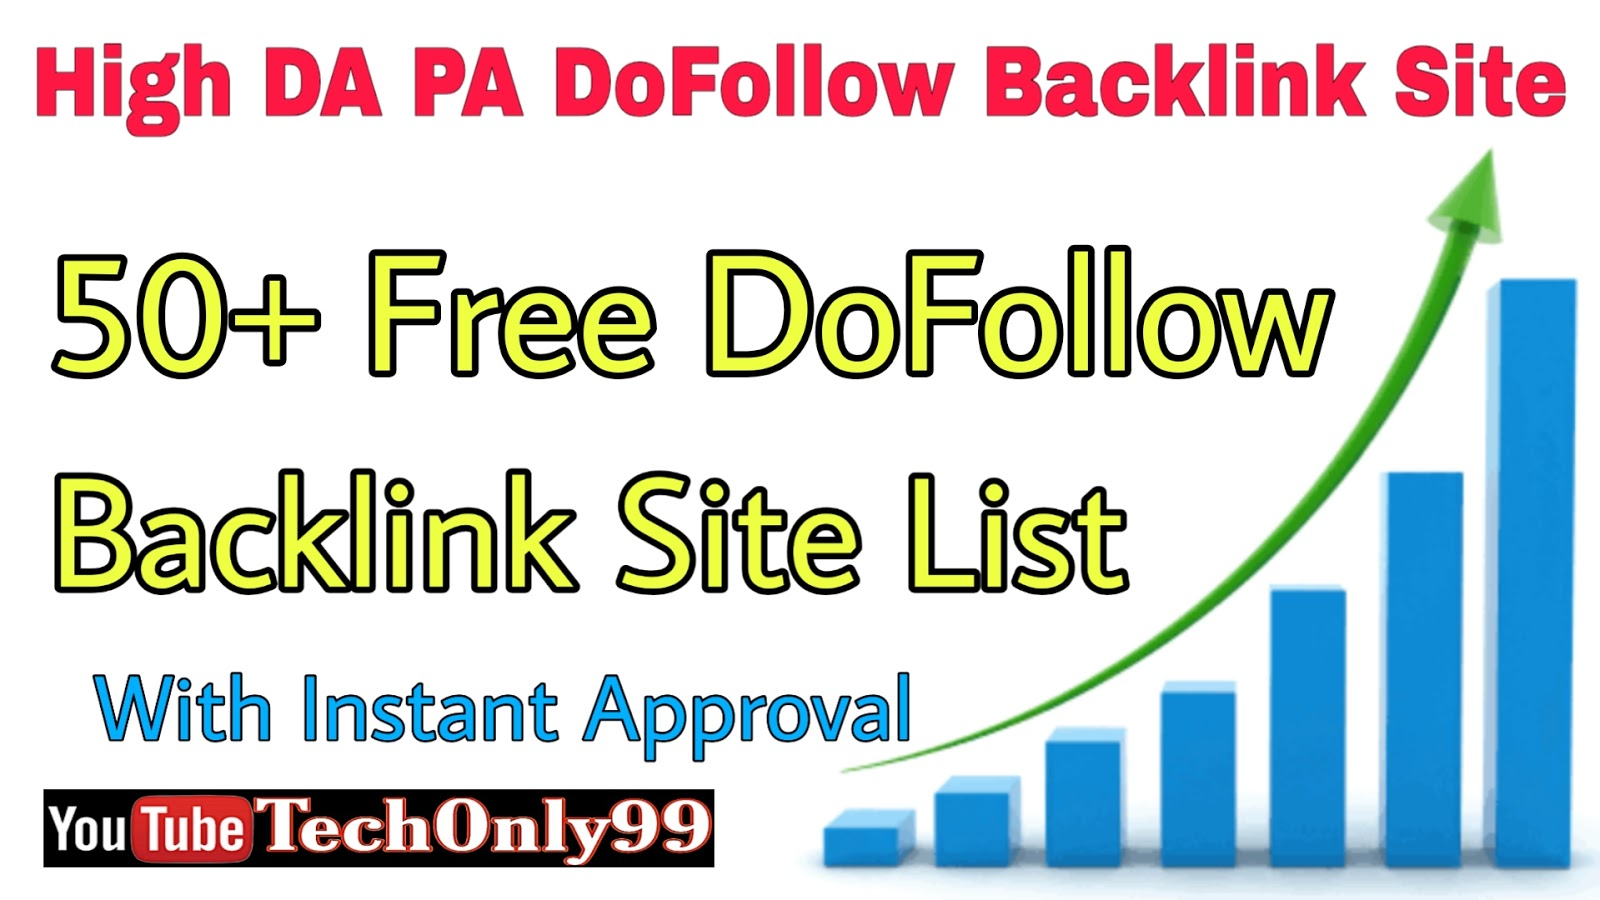 Instant Approval High DA PA DoFollow Backlink Site List 2020